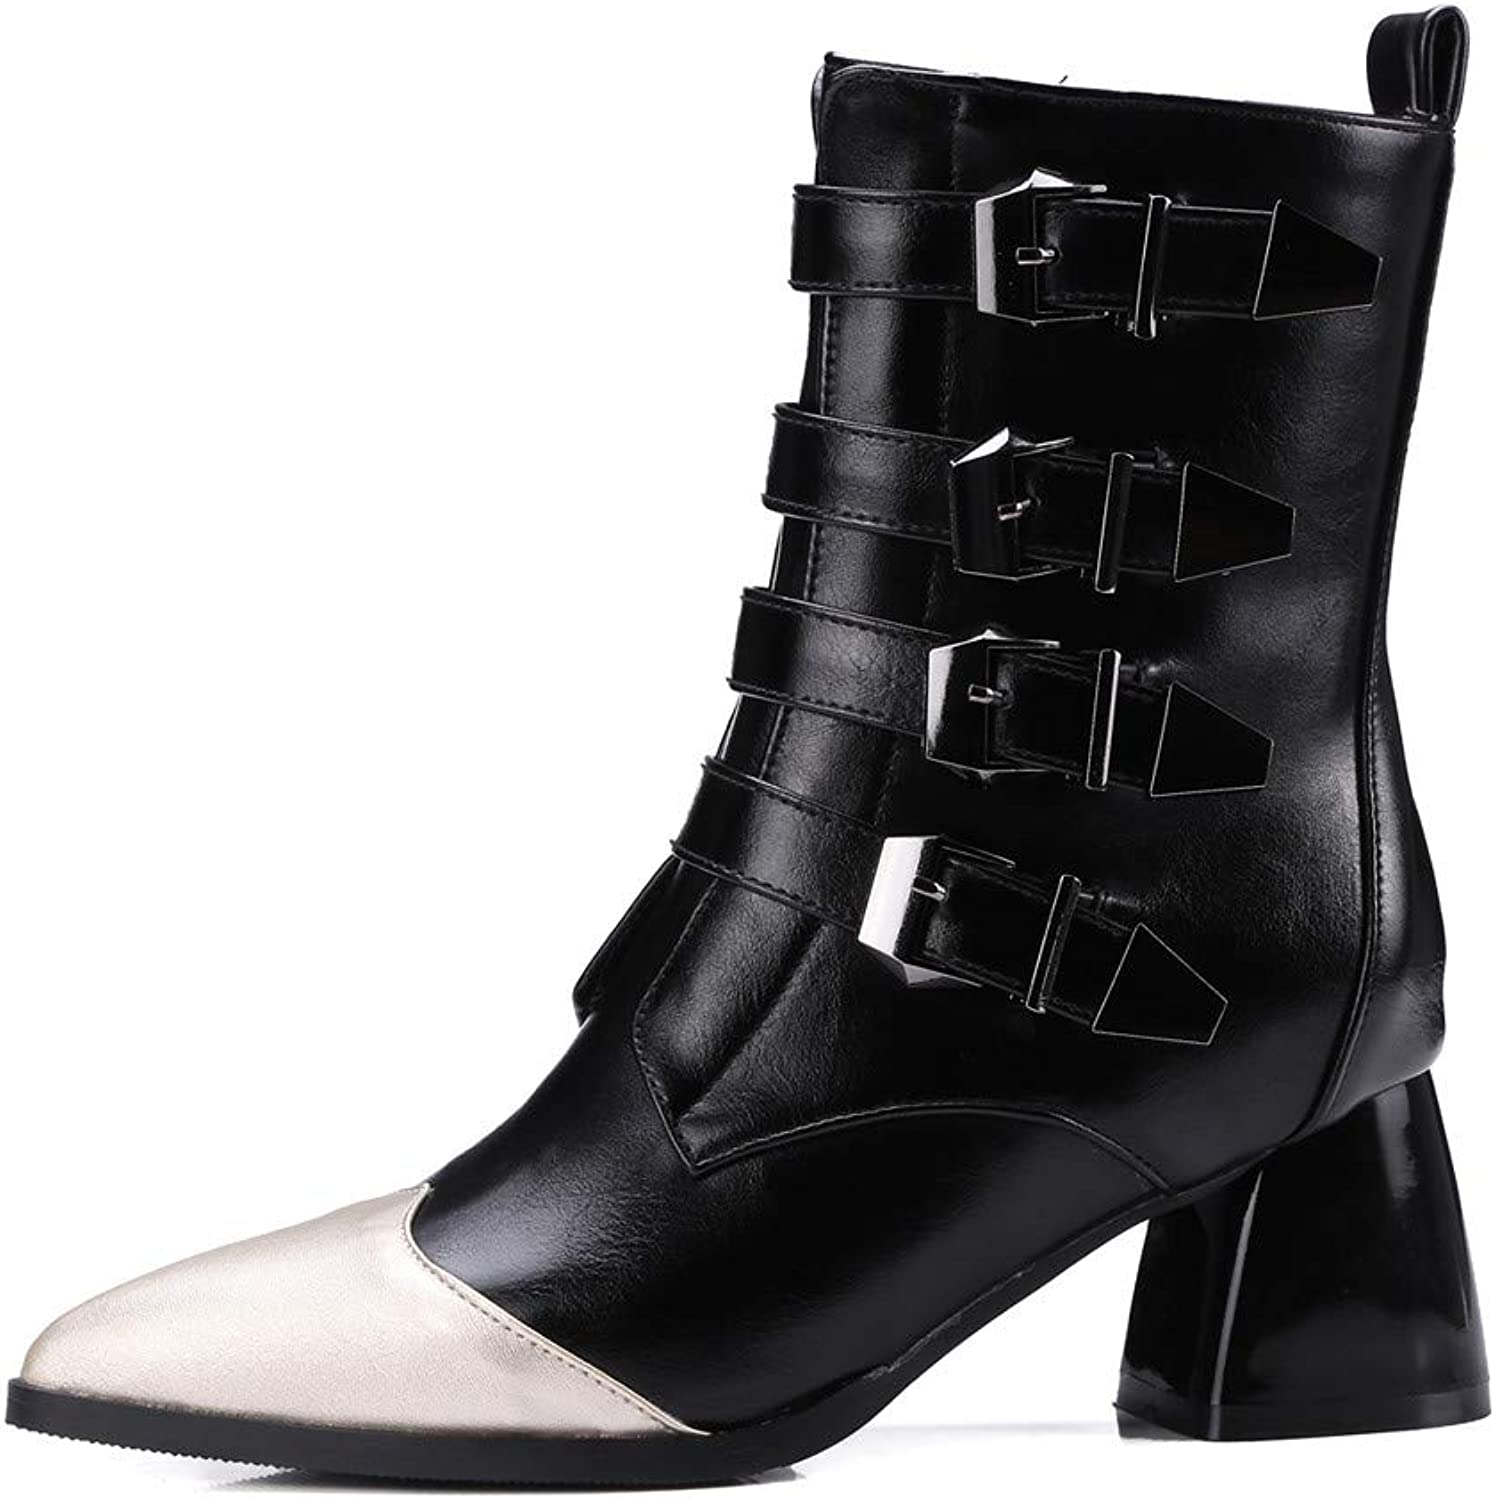 Theshy Women's Fashion Leather Belt Buckle Thick Heel shoes Pointed-Toe Martin Boots